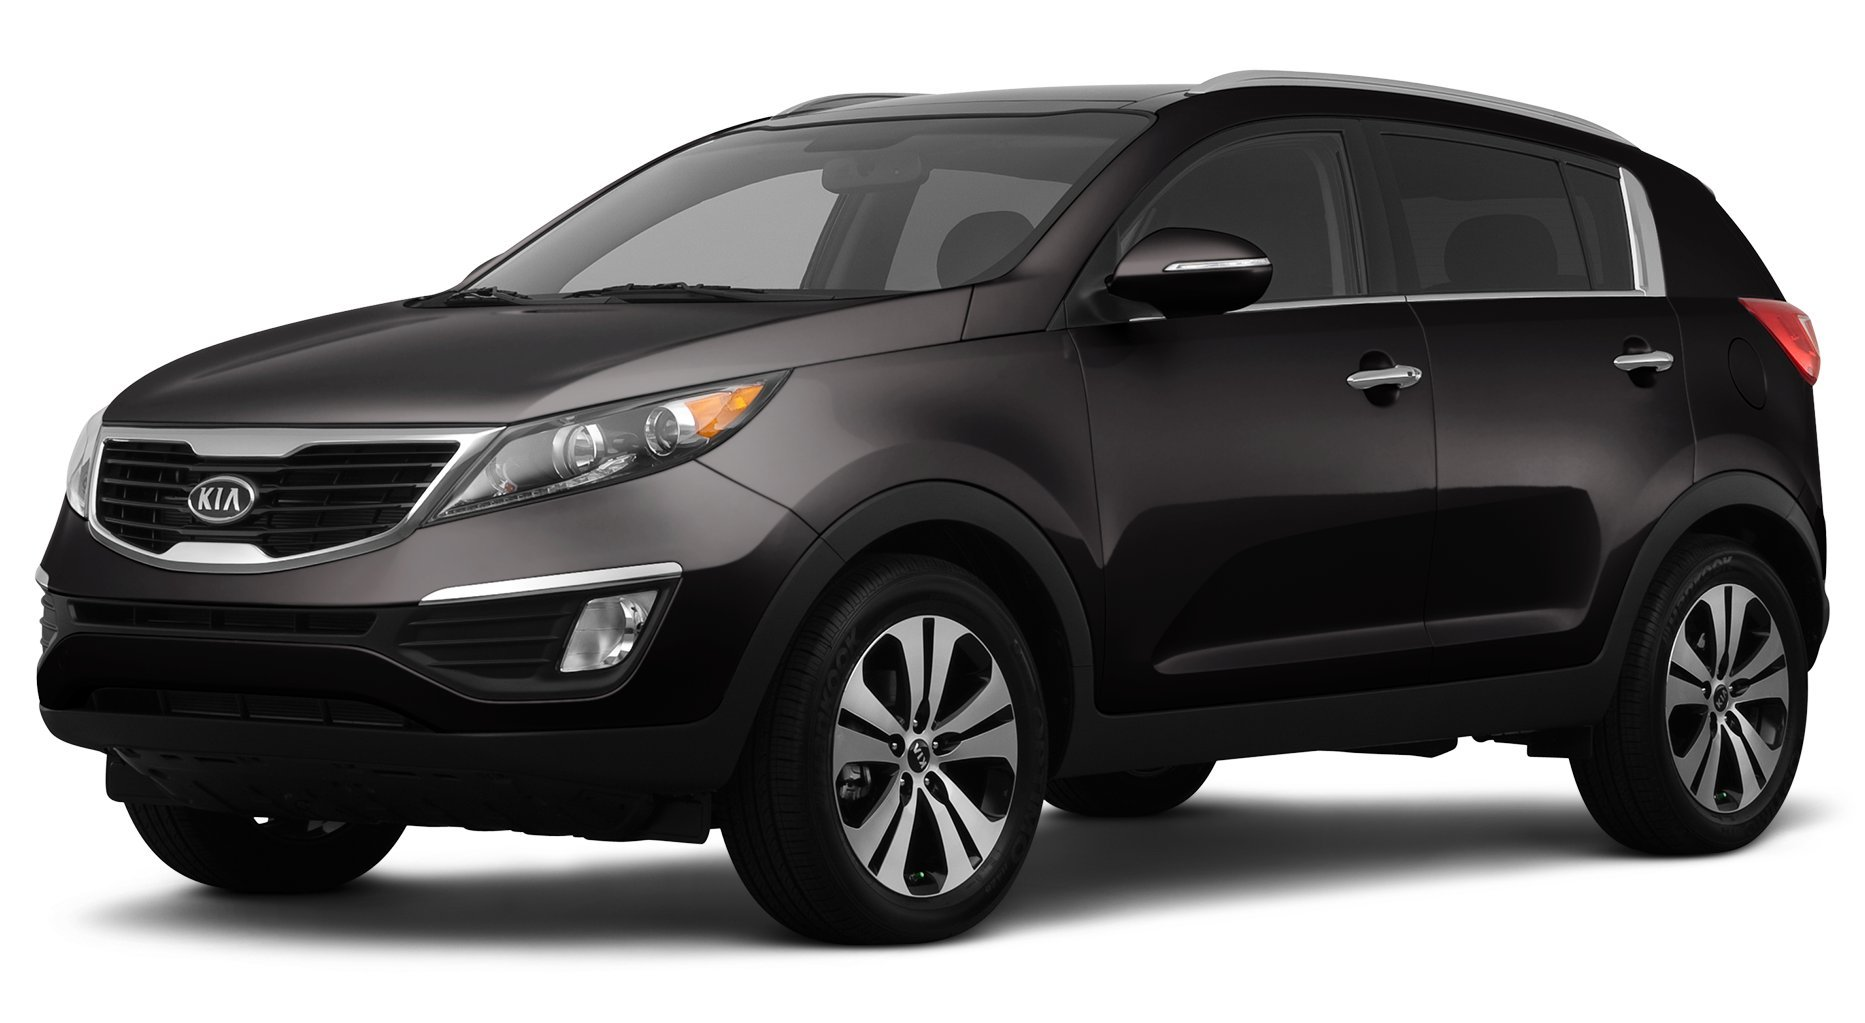 Image result for 2012 Kia Sportage